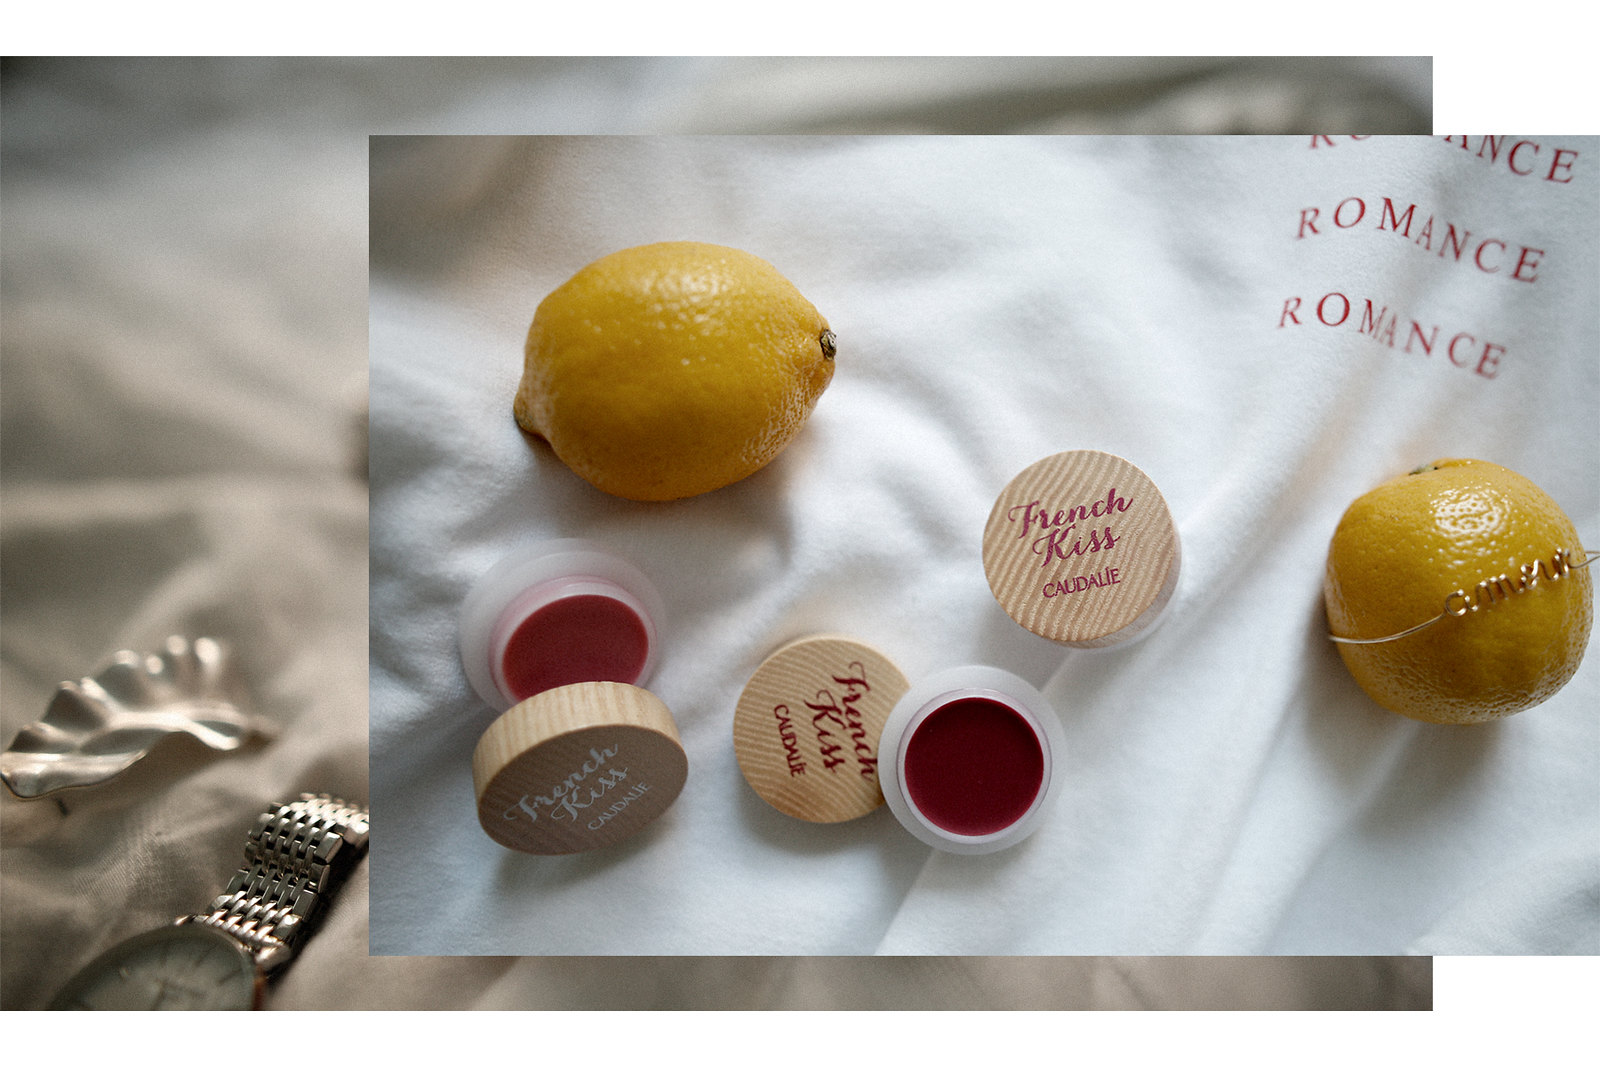 beauty favourites september paula's choice diptyque caudalie fruit home relax reading weekend personal style minimal chic photography beautyblogger germany beauty bloggers cats & dogs beauty blog ricarda schernus max bechmann fotografie film düsseldorf 4